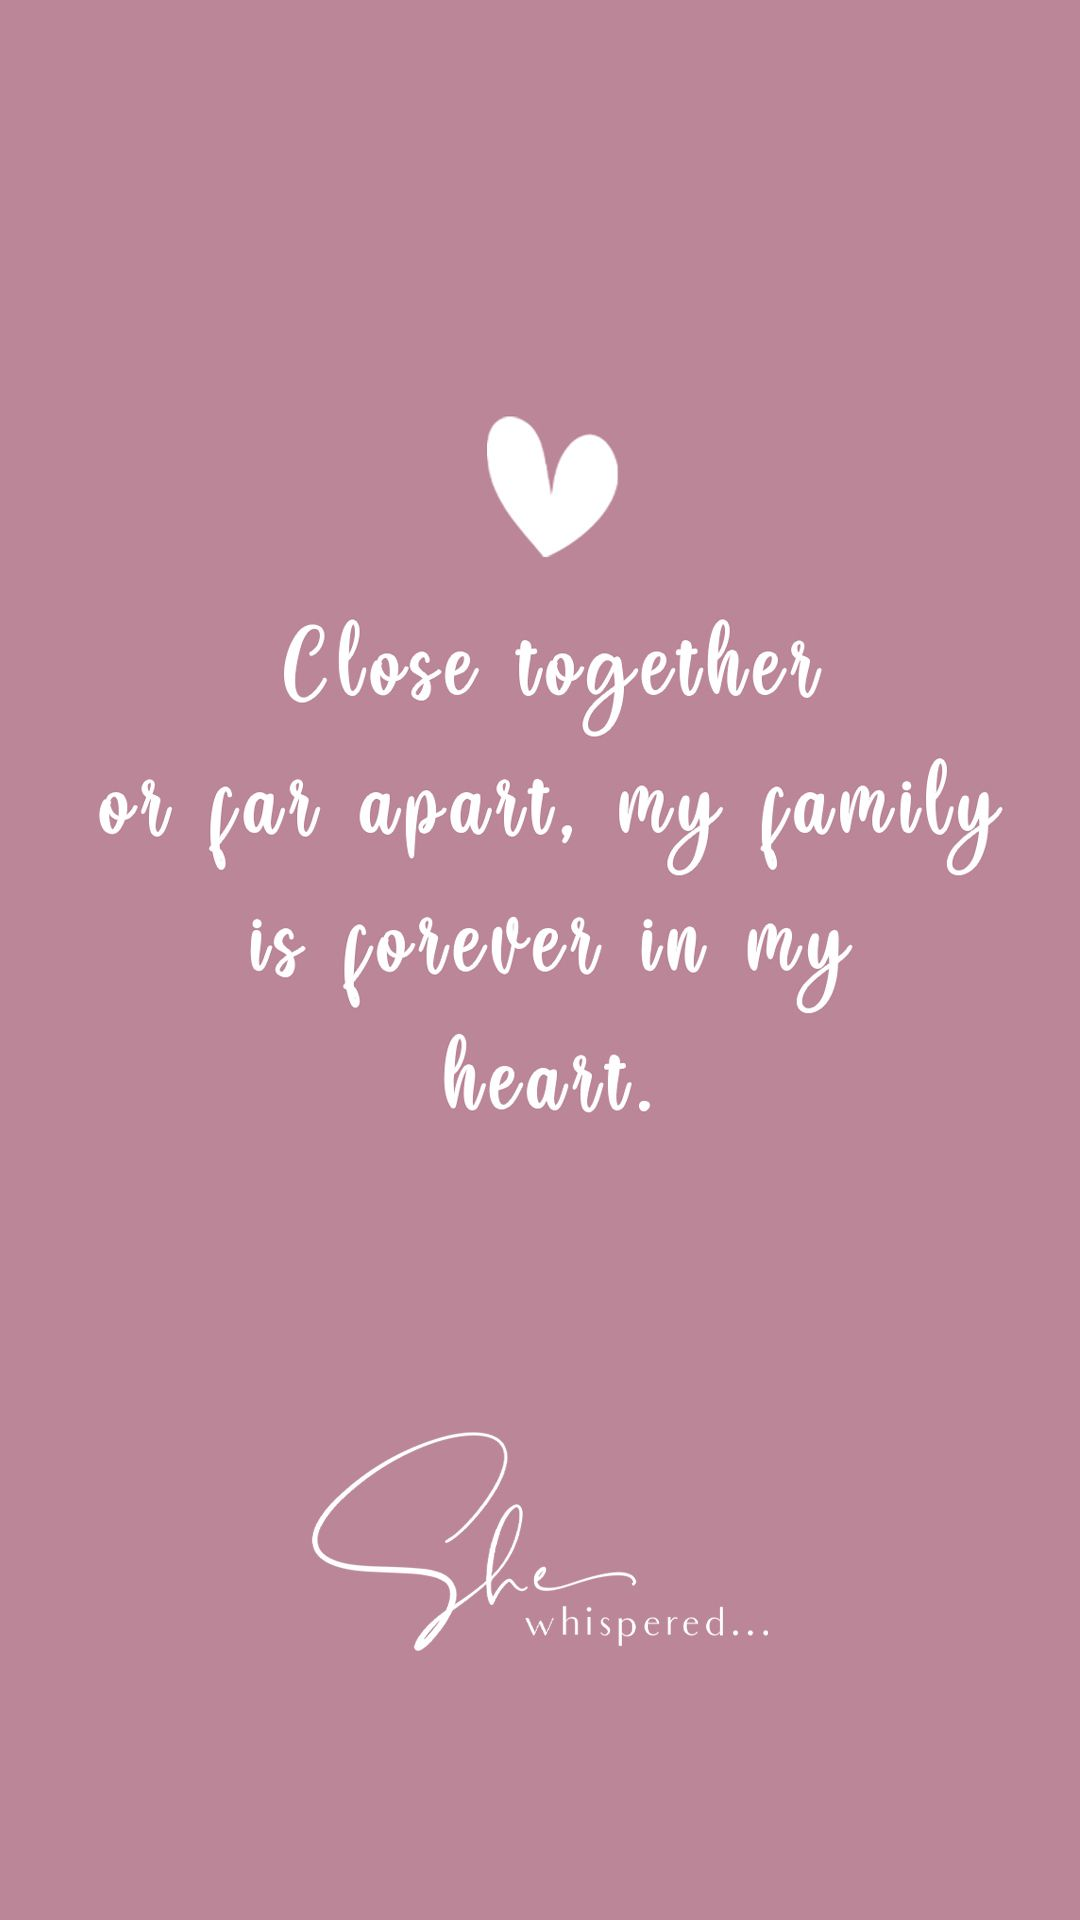 Love Quotes Being Apart Quotes Missing Family Quotes Pretty Quotes